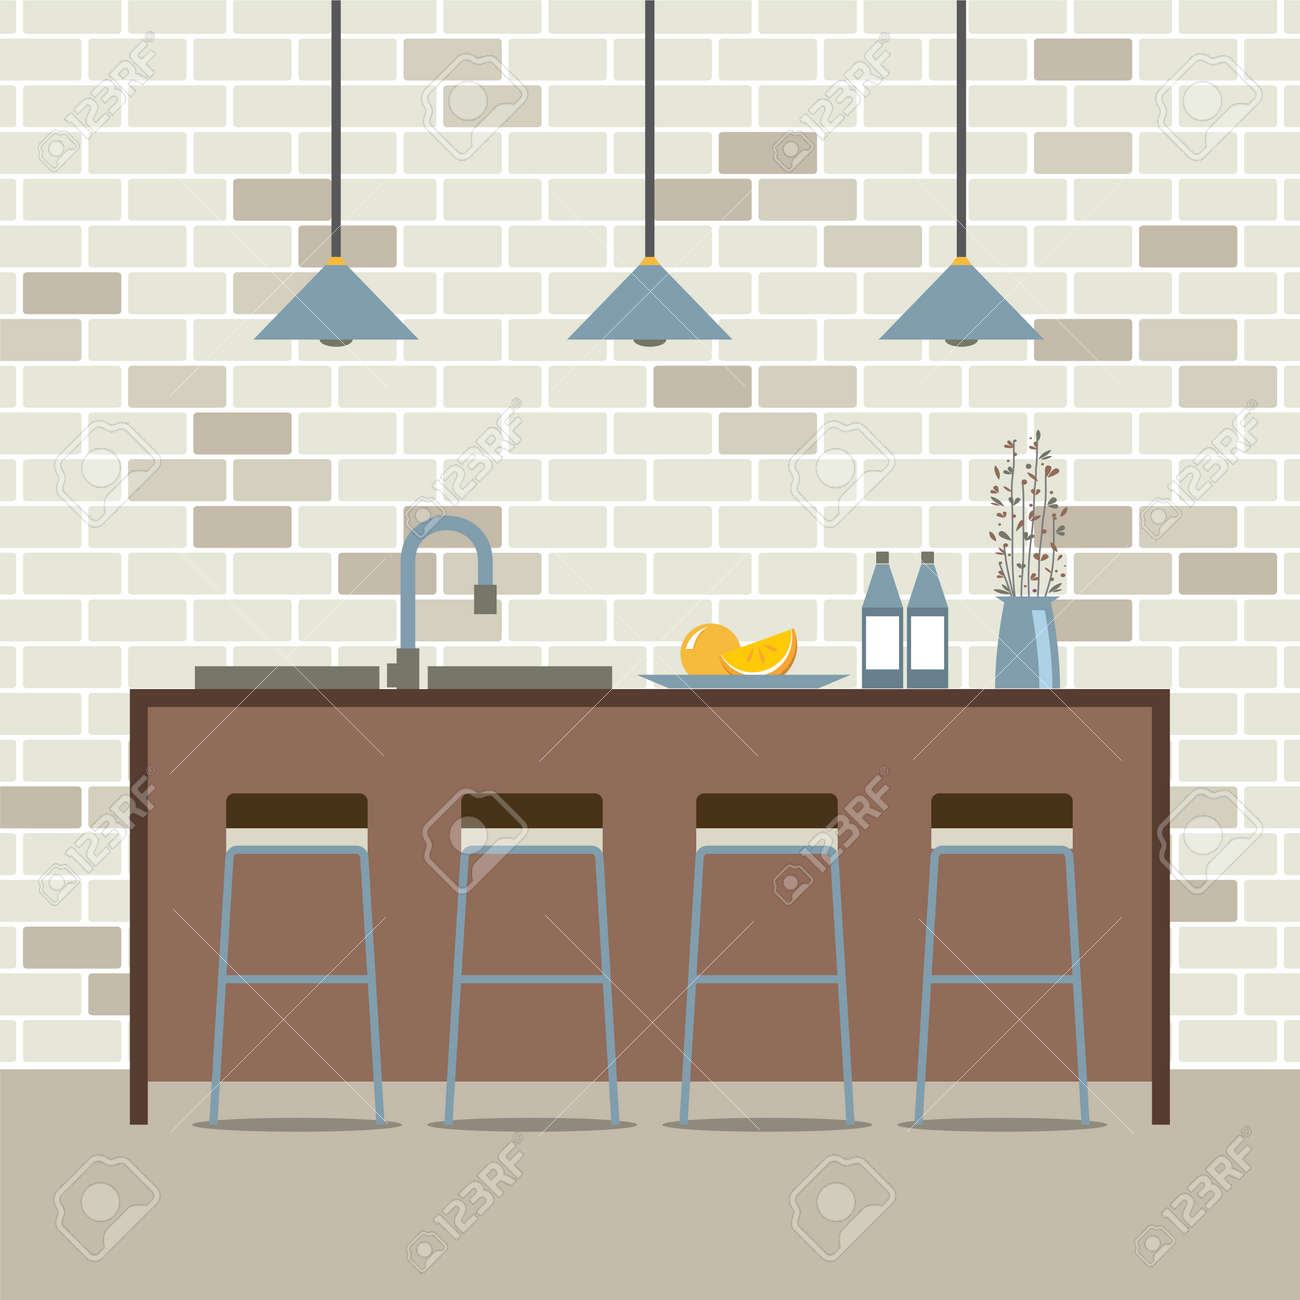 Modern Flat Design Kitchen Interior Vector Illustration Royalty Free